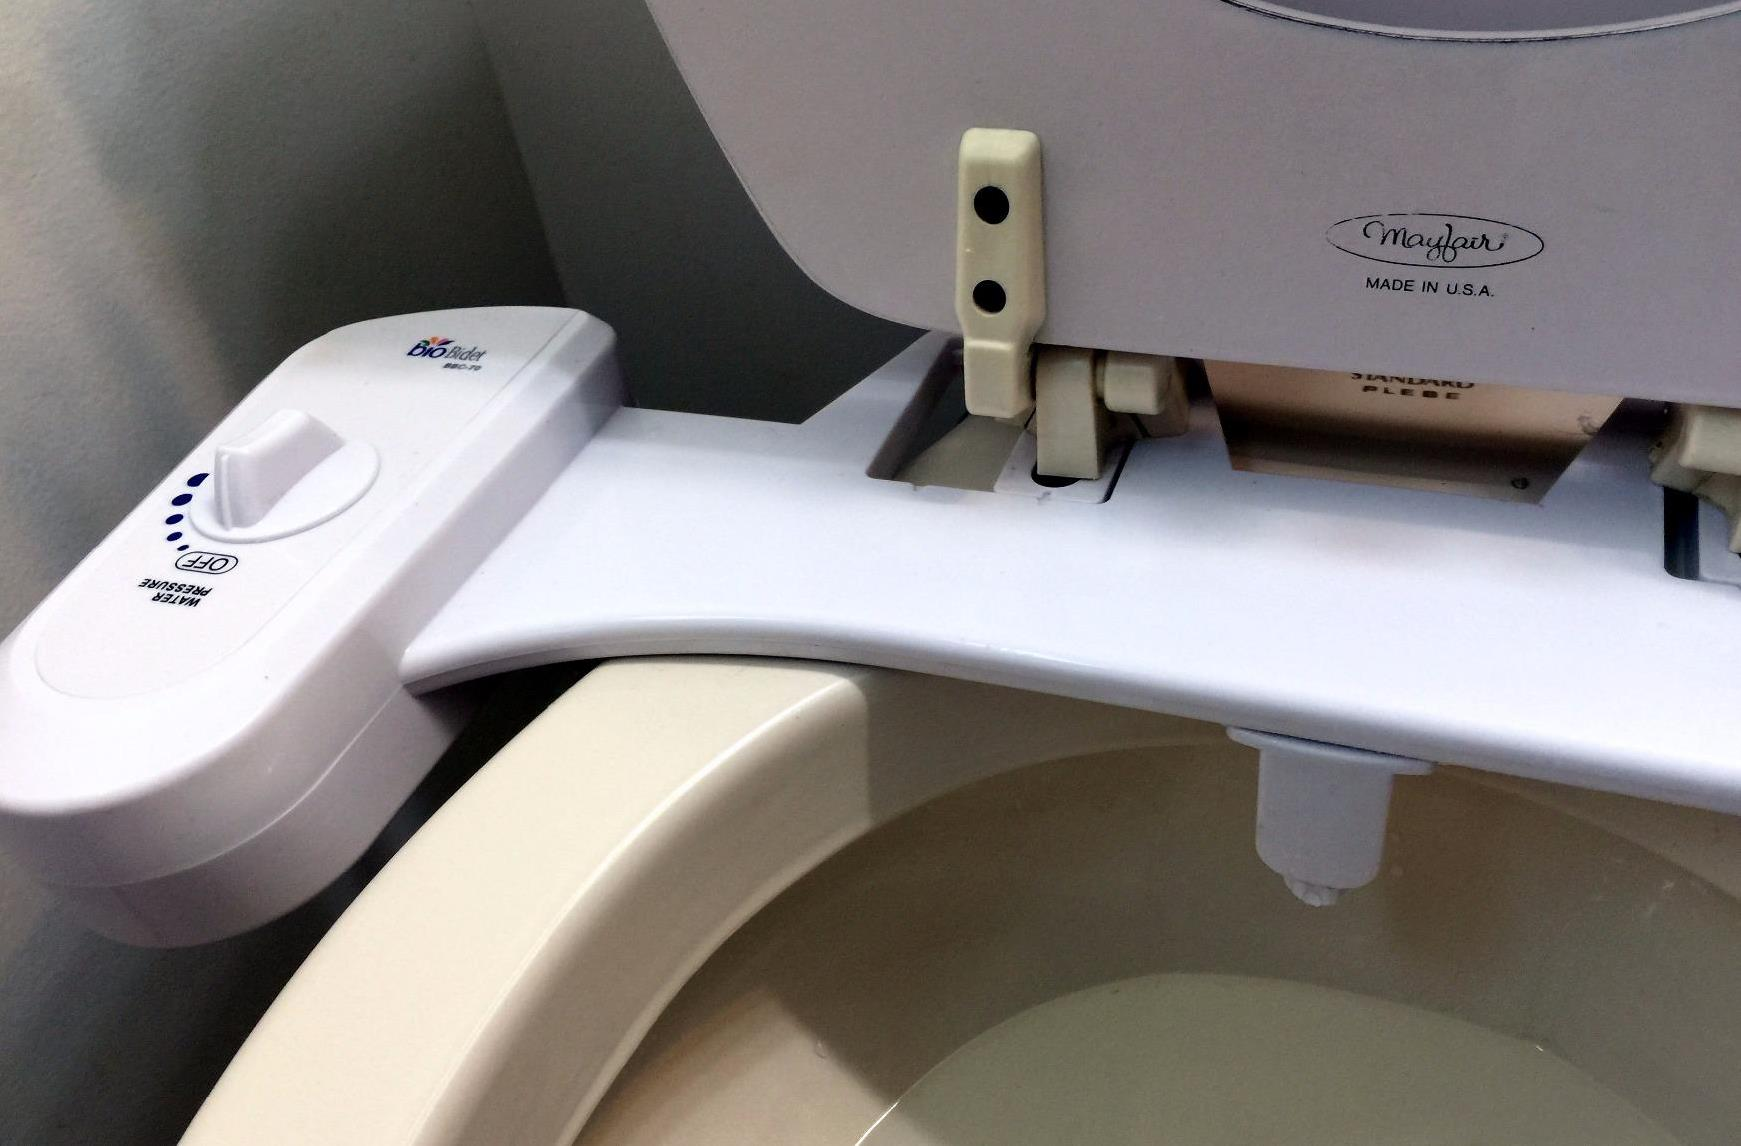 bathroom toilet electronic ls dxv integrated bidet product spalet